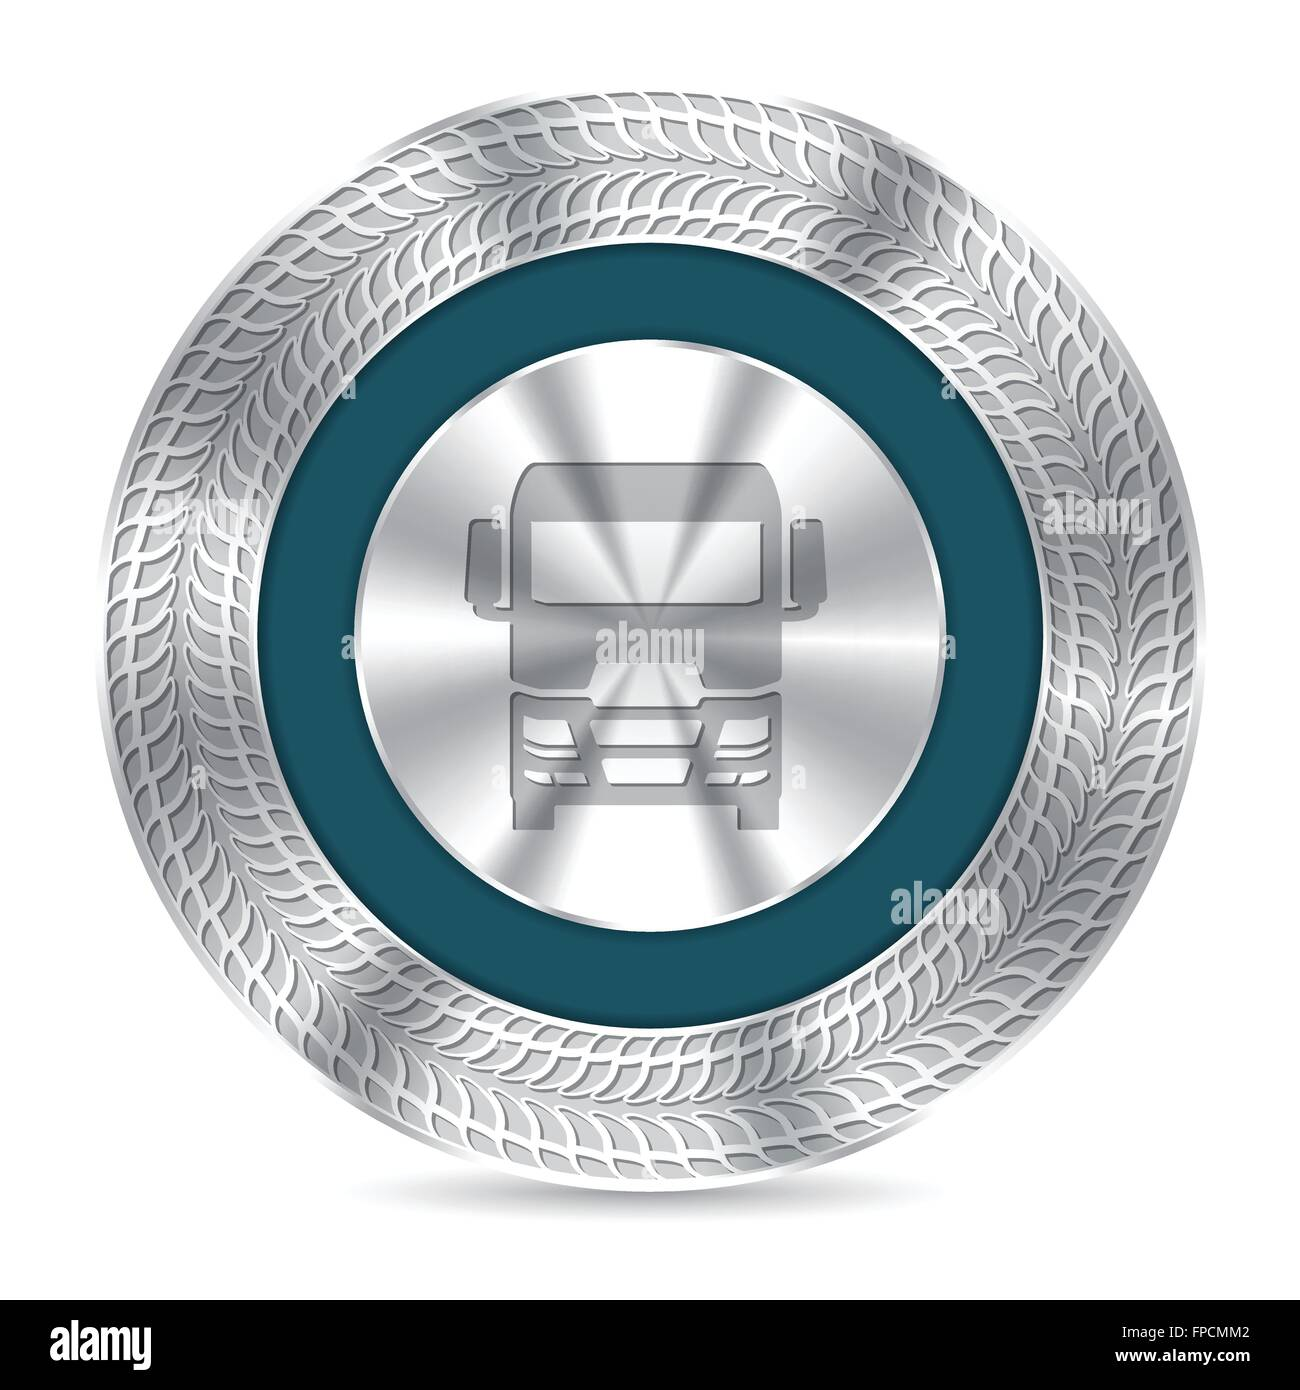 Cool metallic truck badge design with debossed tire tracks - Stock Image